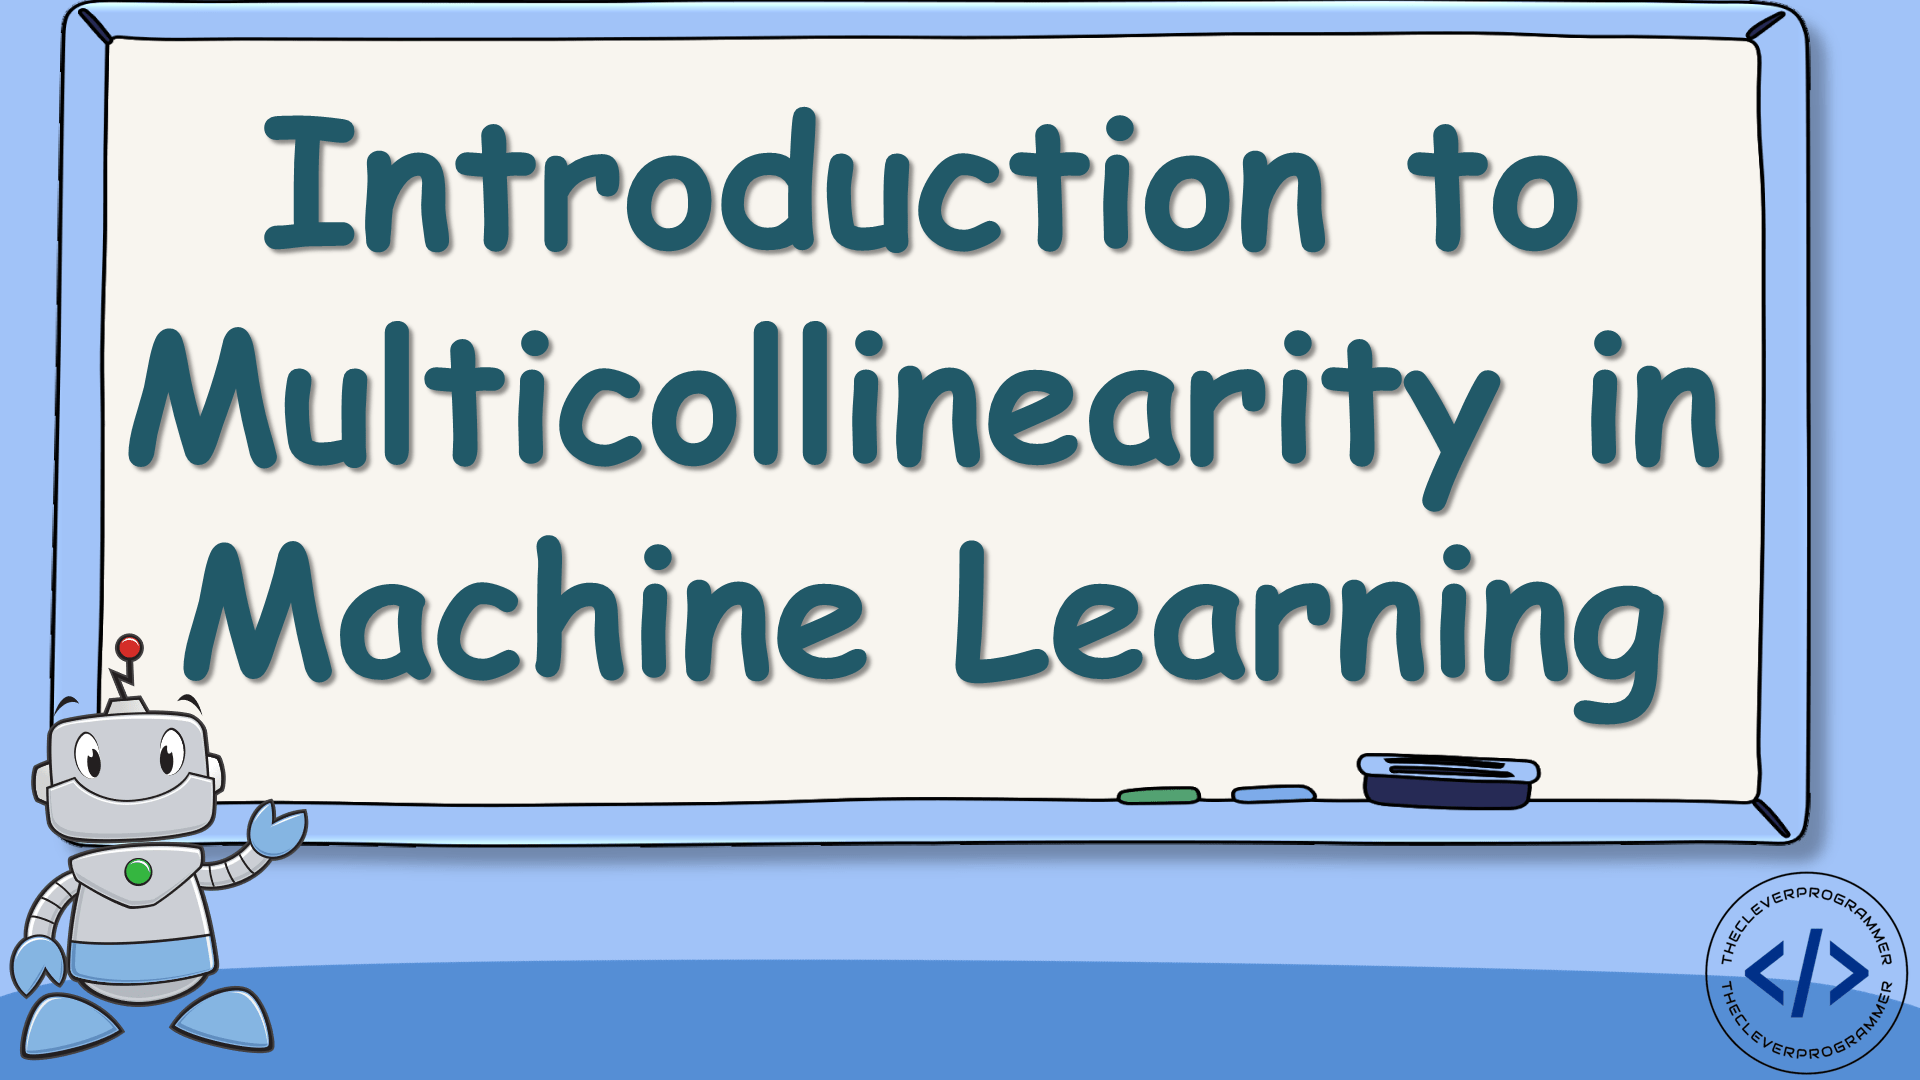 What is Multicollinearity in Machine Learning?